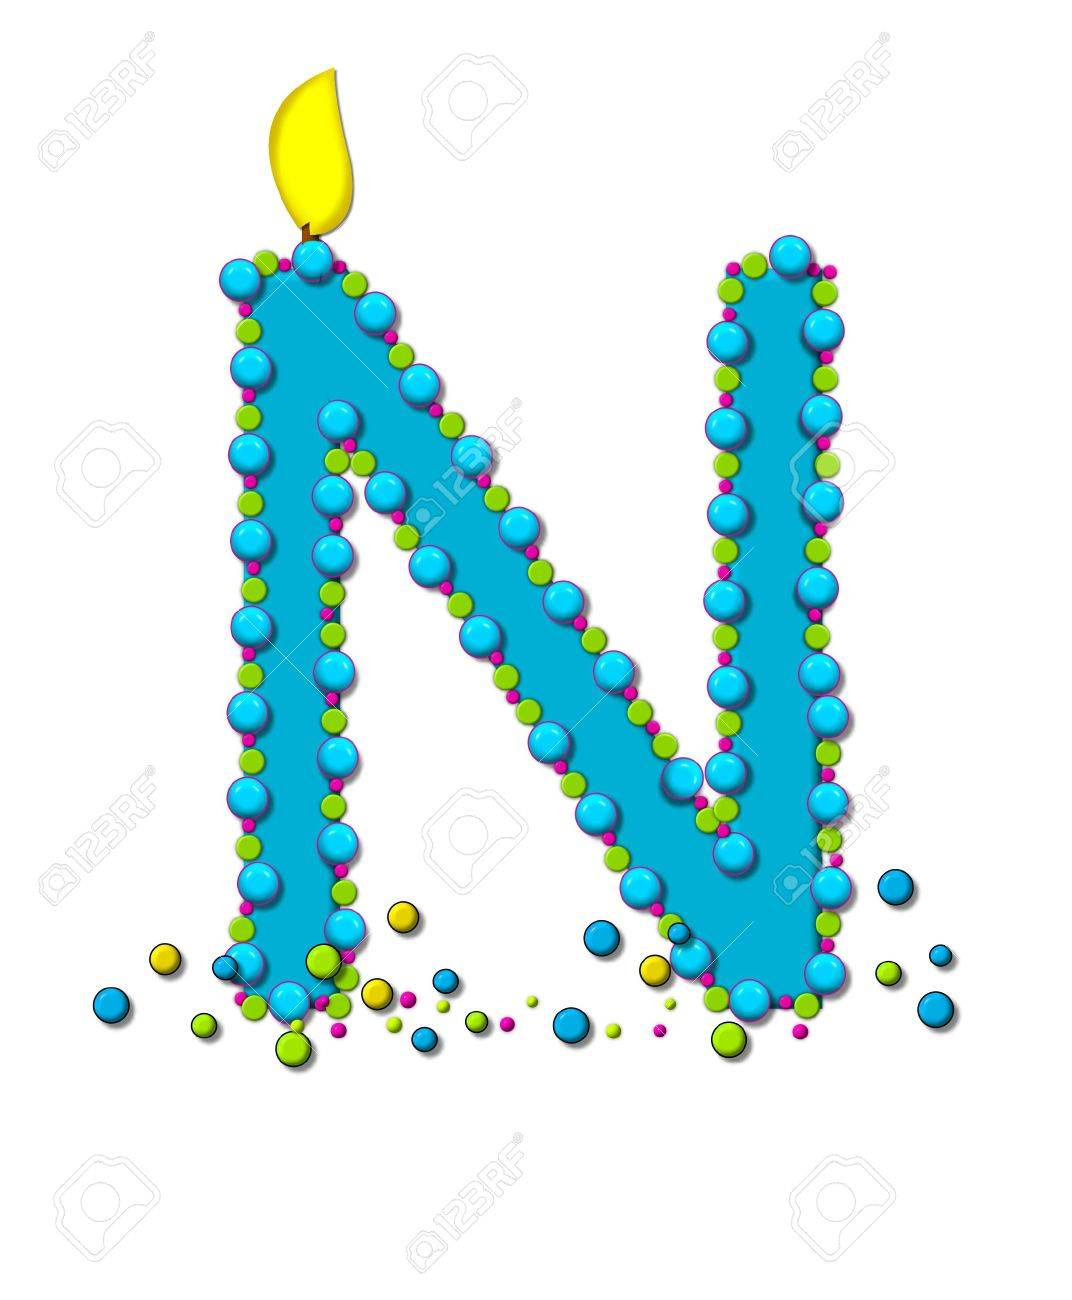 stock photo the letter n in the alphabet set birthday cake candle is aqua and outlined in fun colored sprinkles flame burns from top of letter